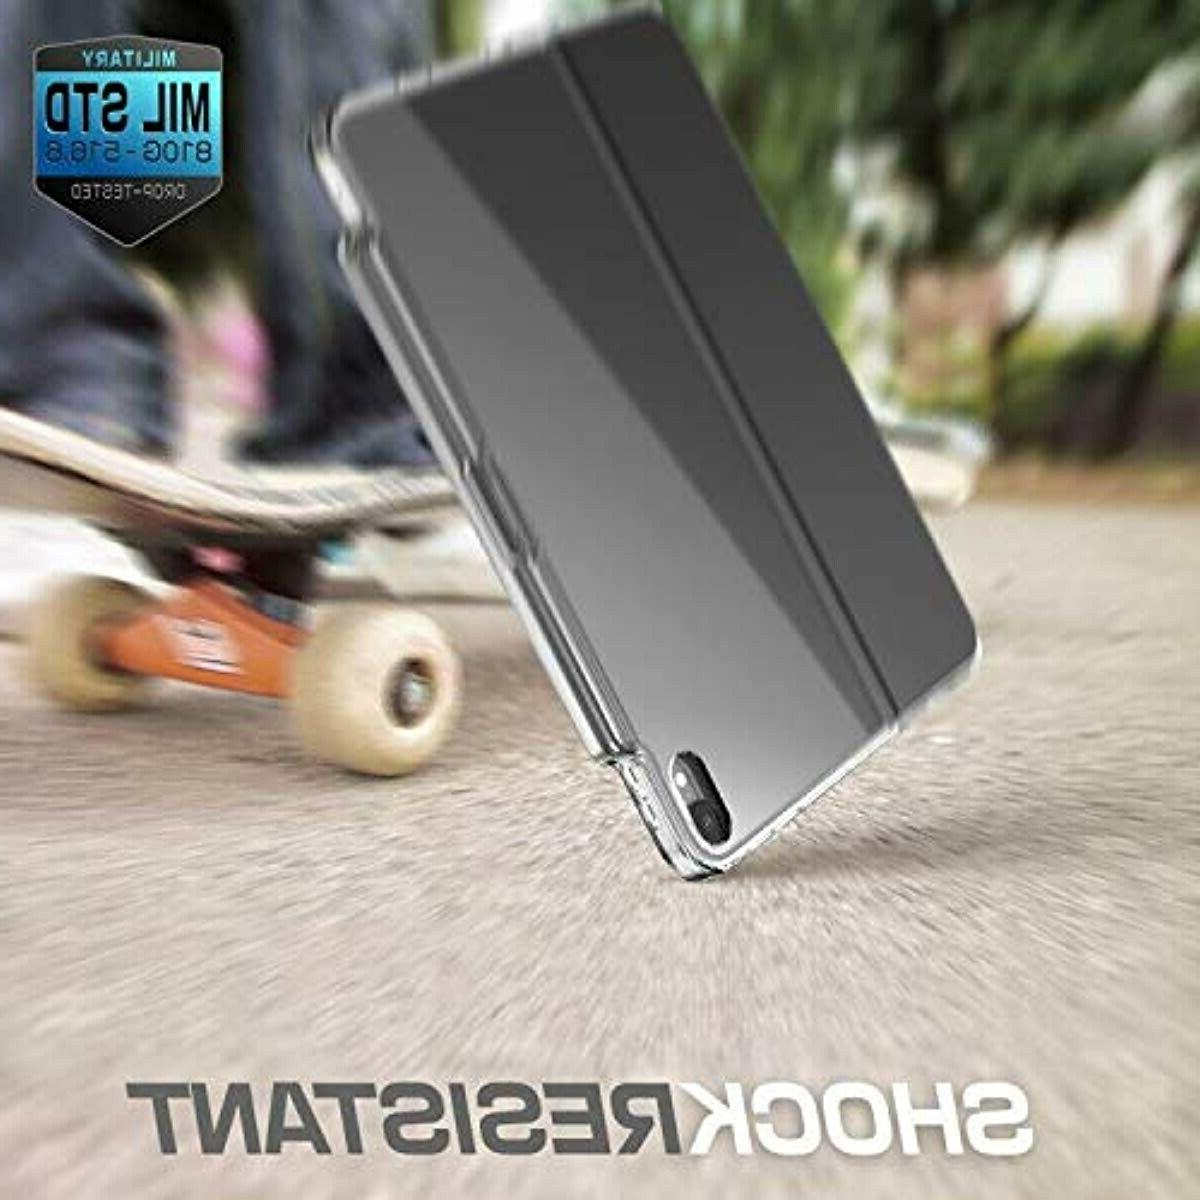 iPad 12.9 with Official Smart Cover and